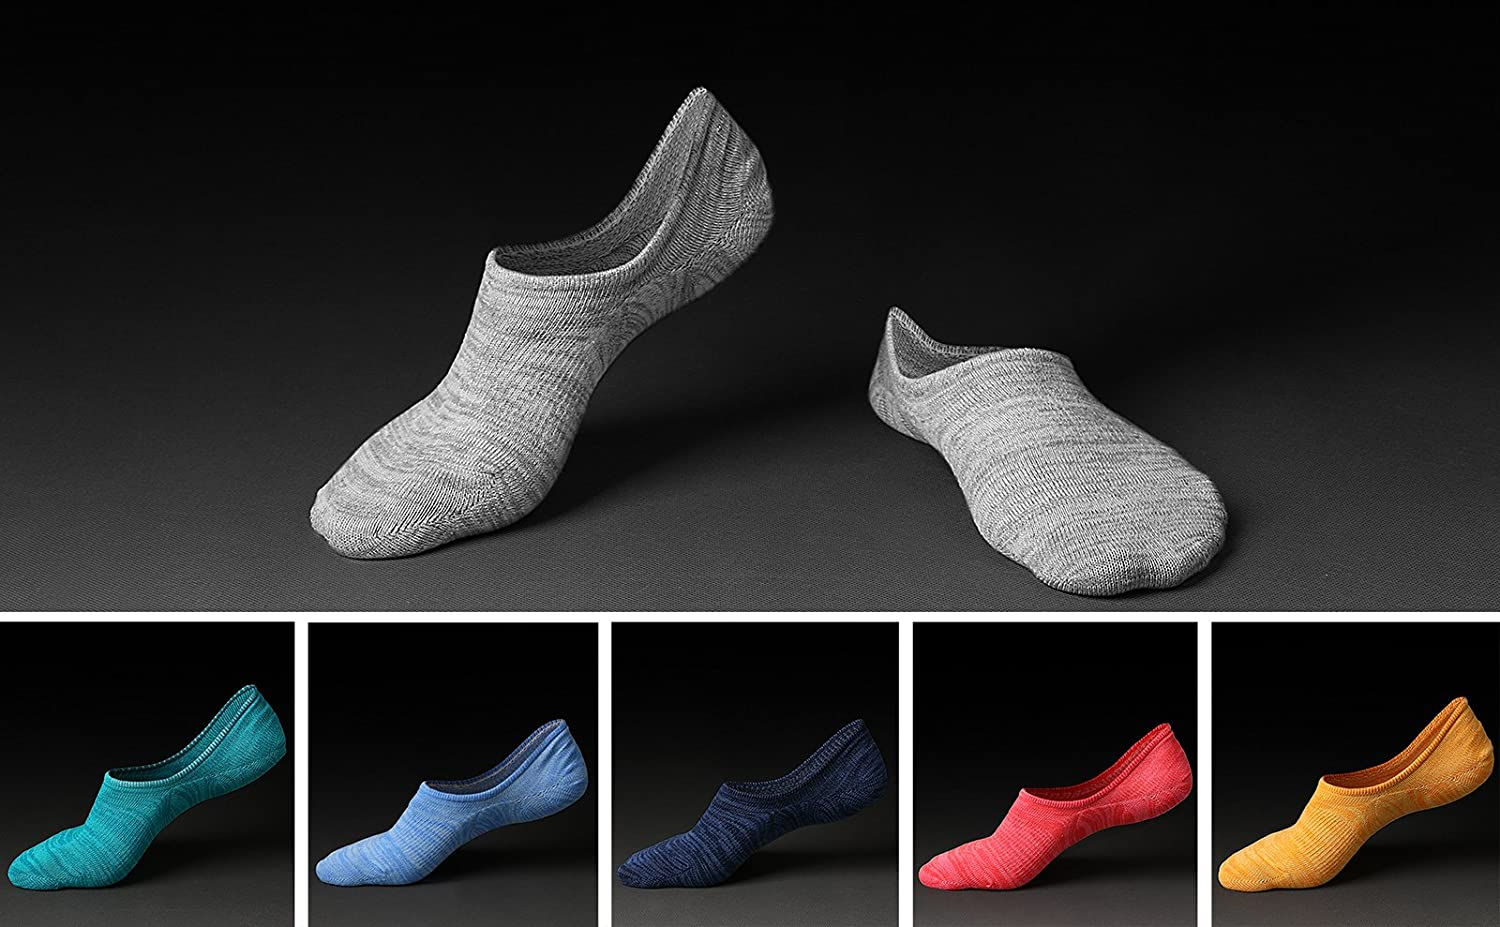 IDEGG No Show Socks Low Cut Cotton Casual Anti-slid Athletic Socks with Non Slip Grip for Men and Women